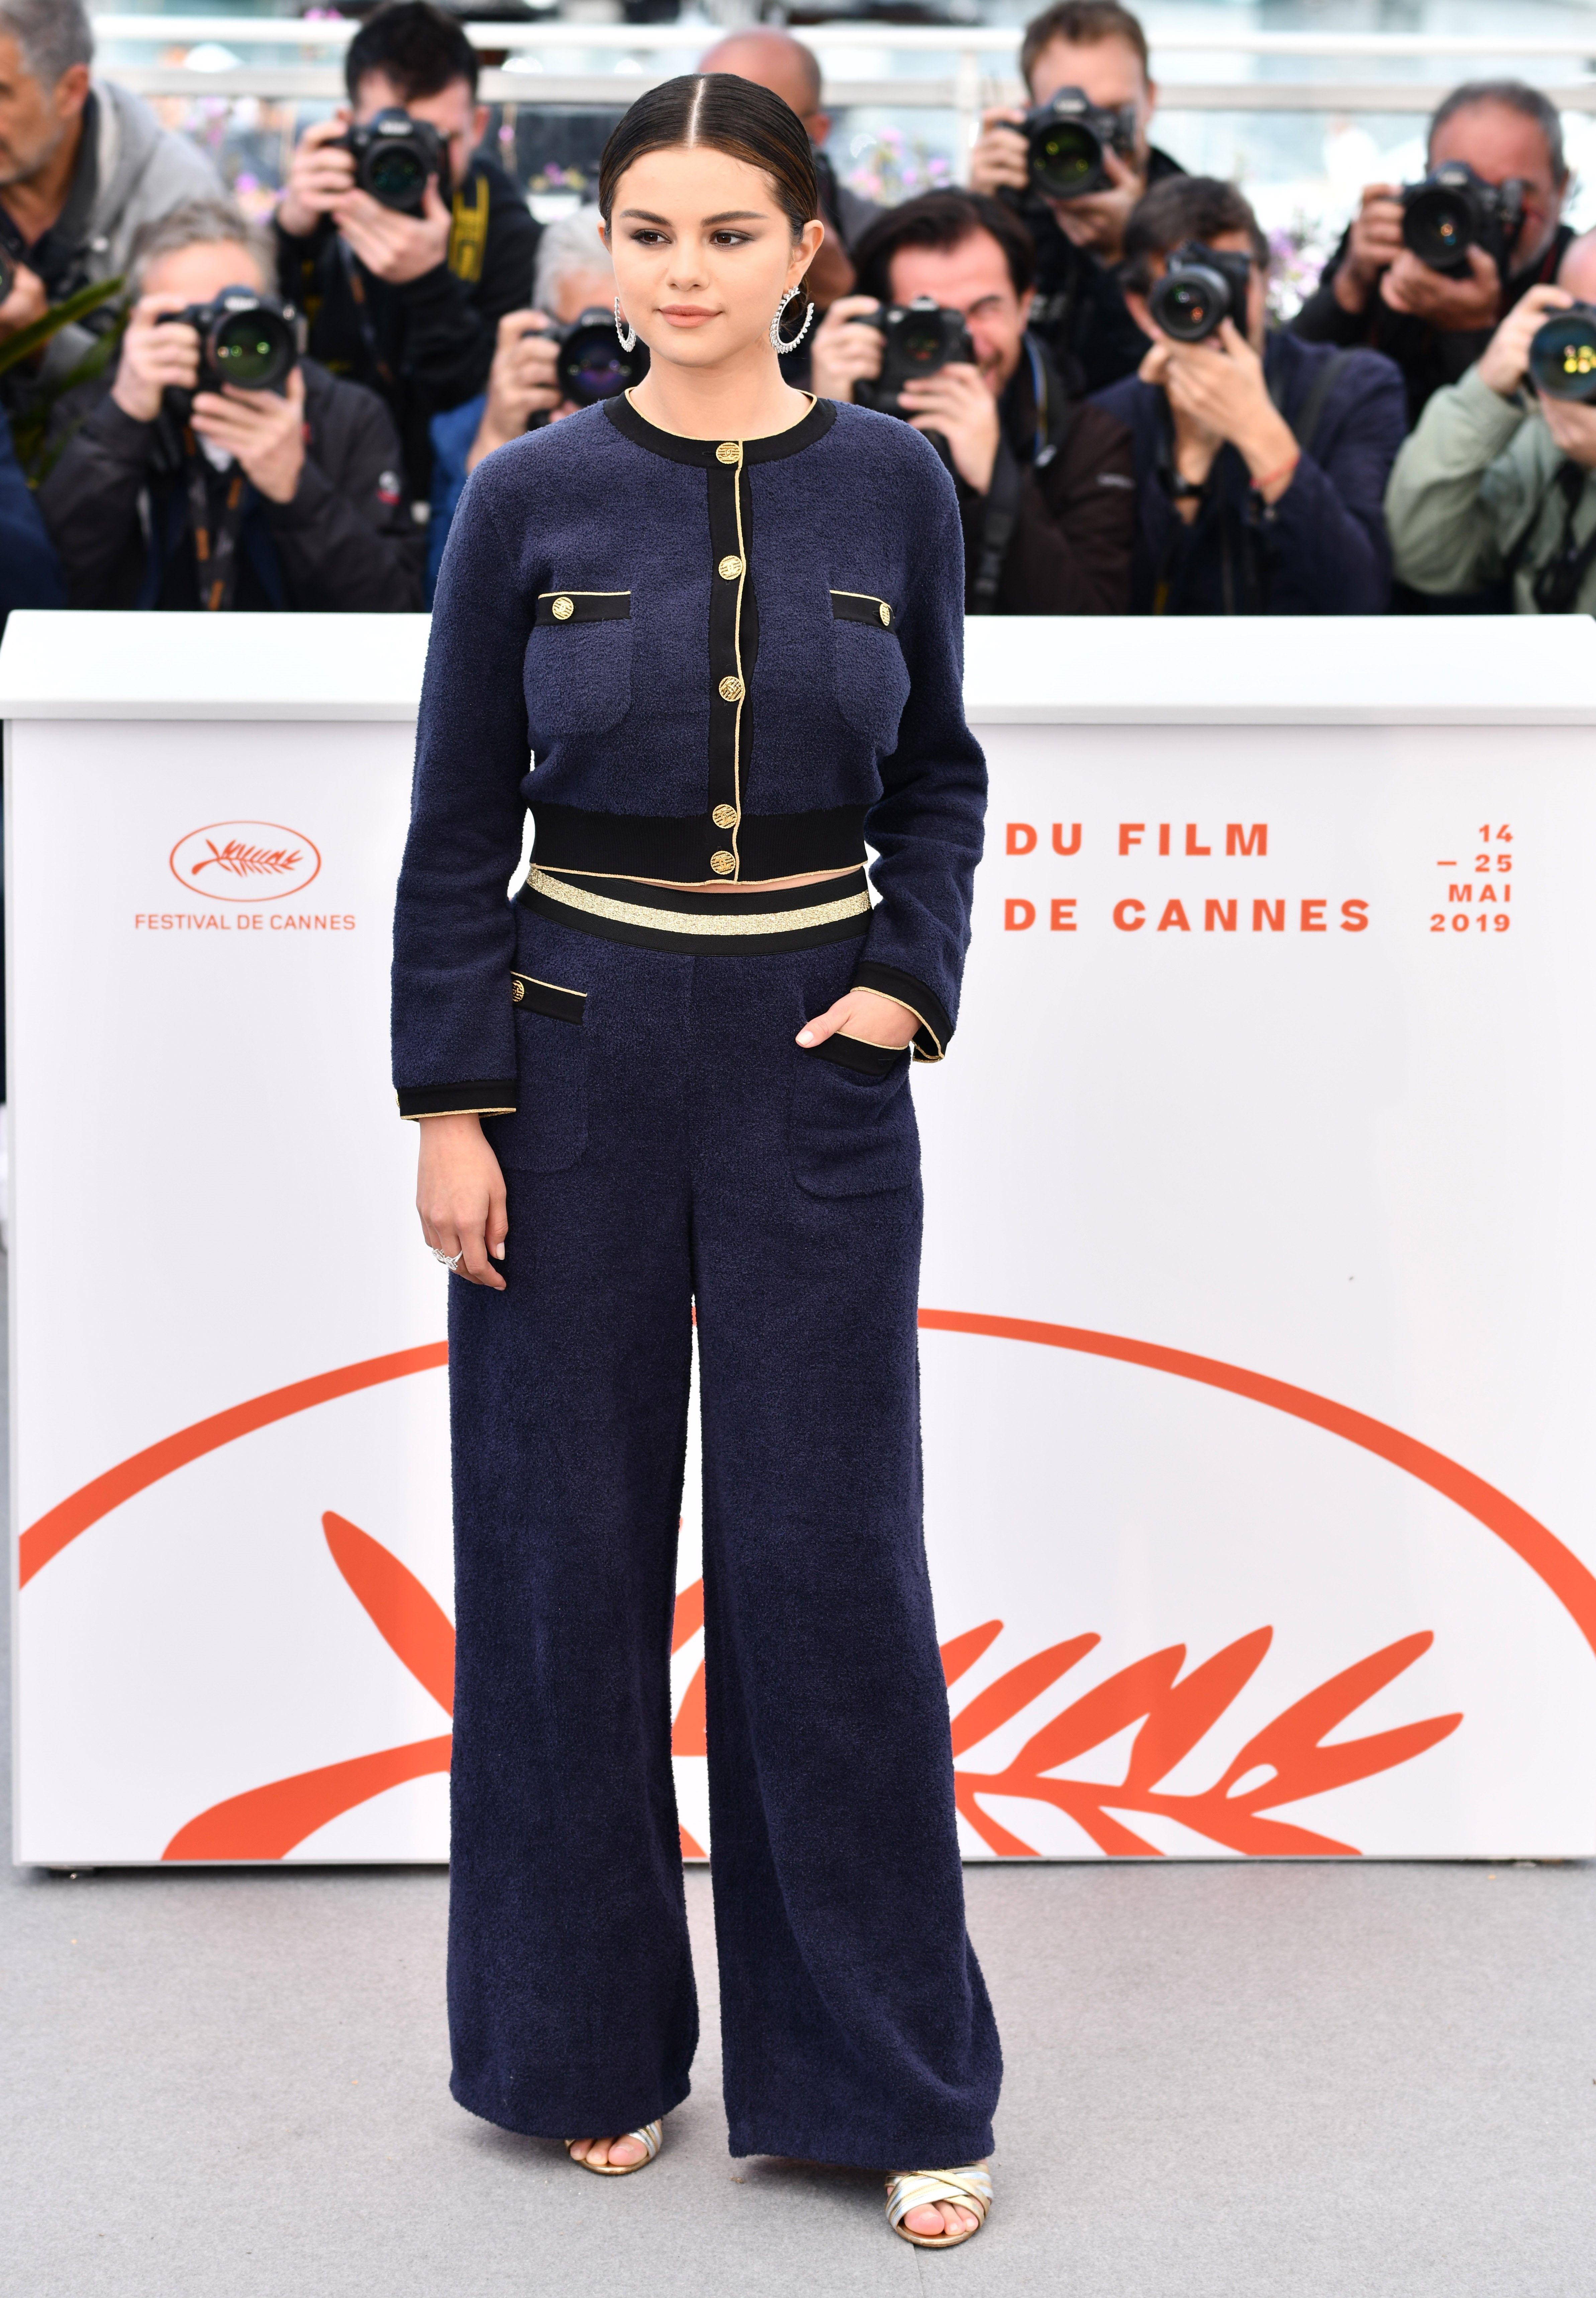 72nd Cannes Film Festival, The Dead Don't Die Photocall